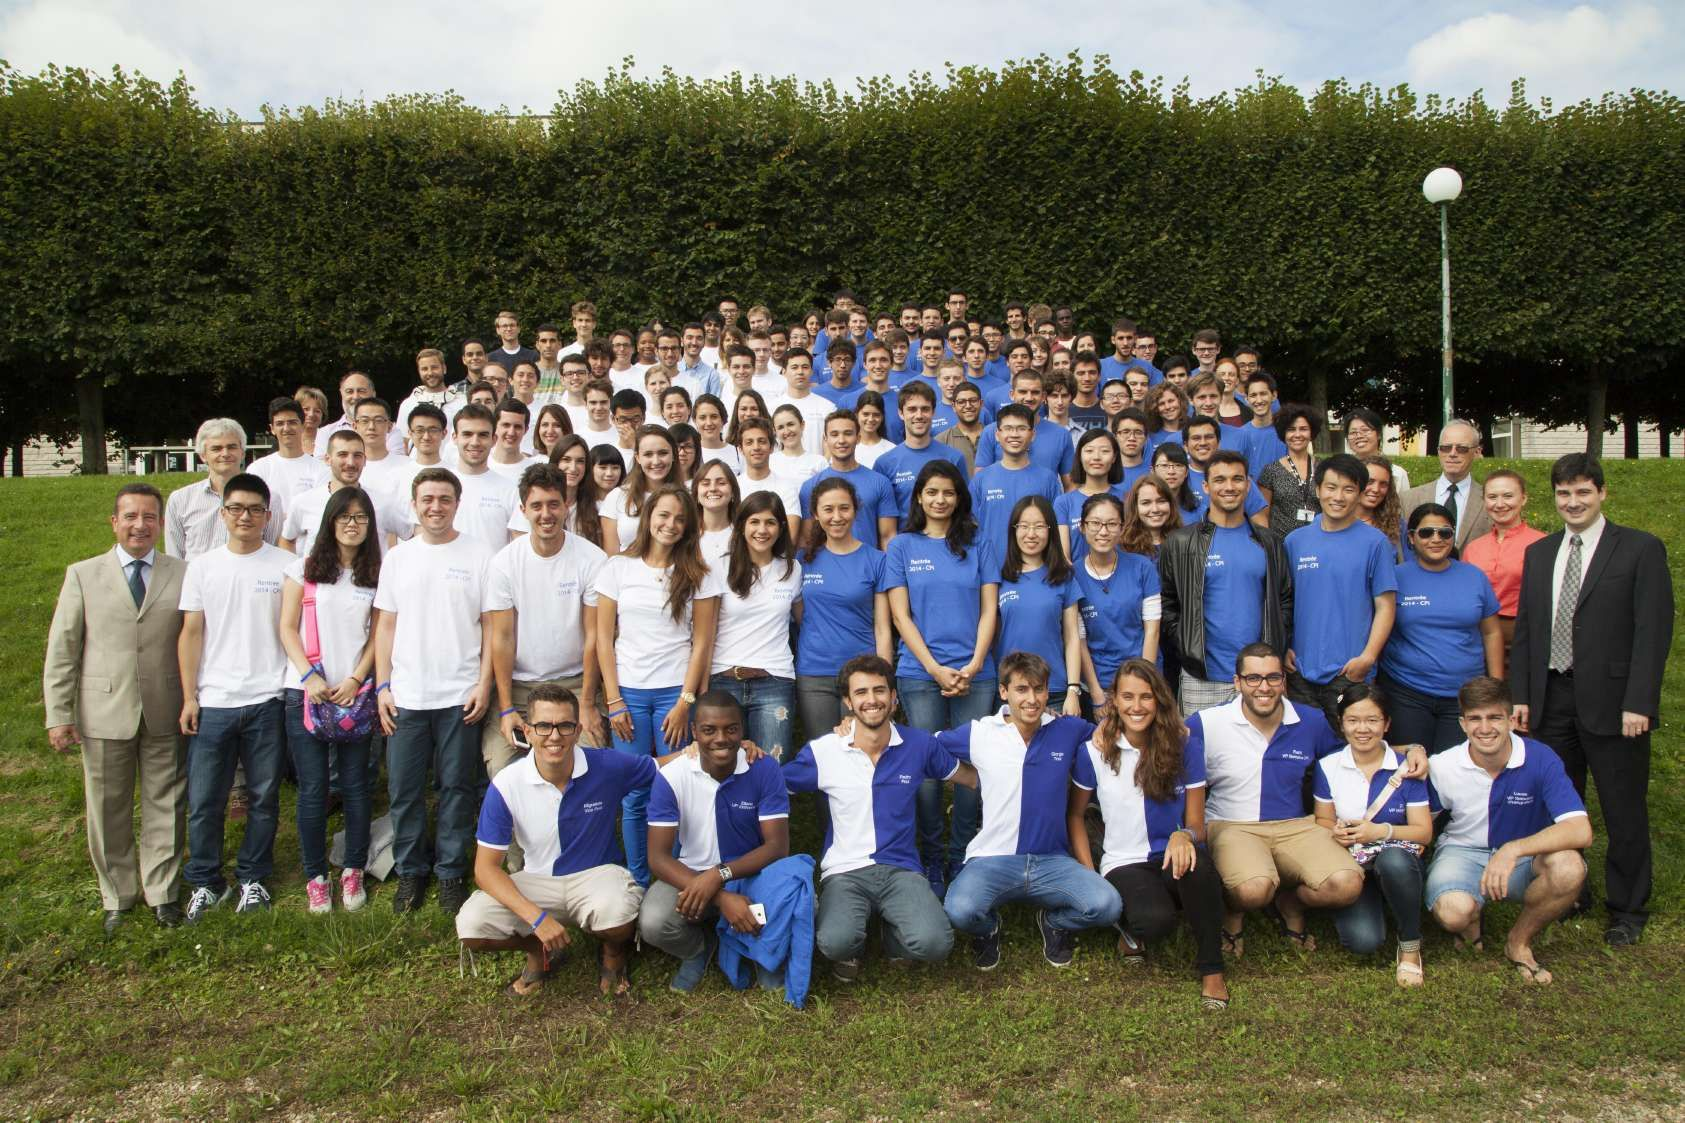 Official picture of the 2014/15 incoming students